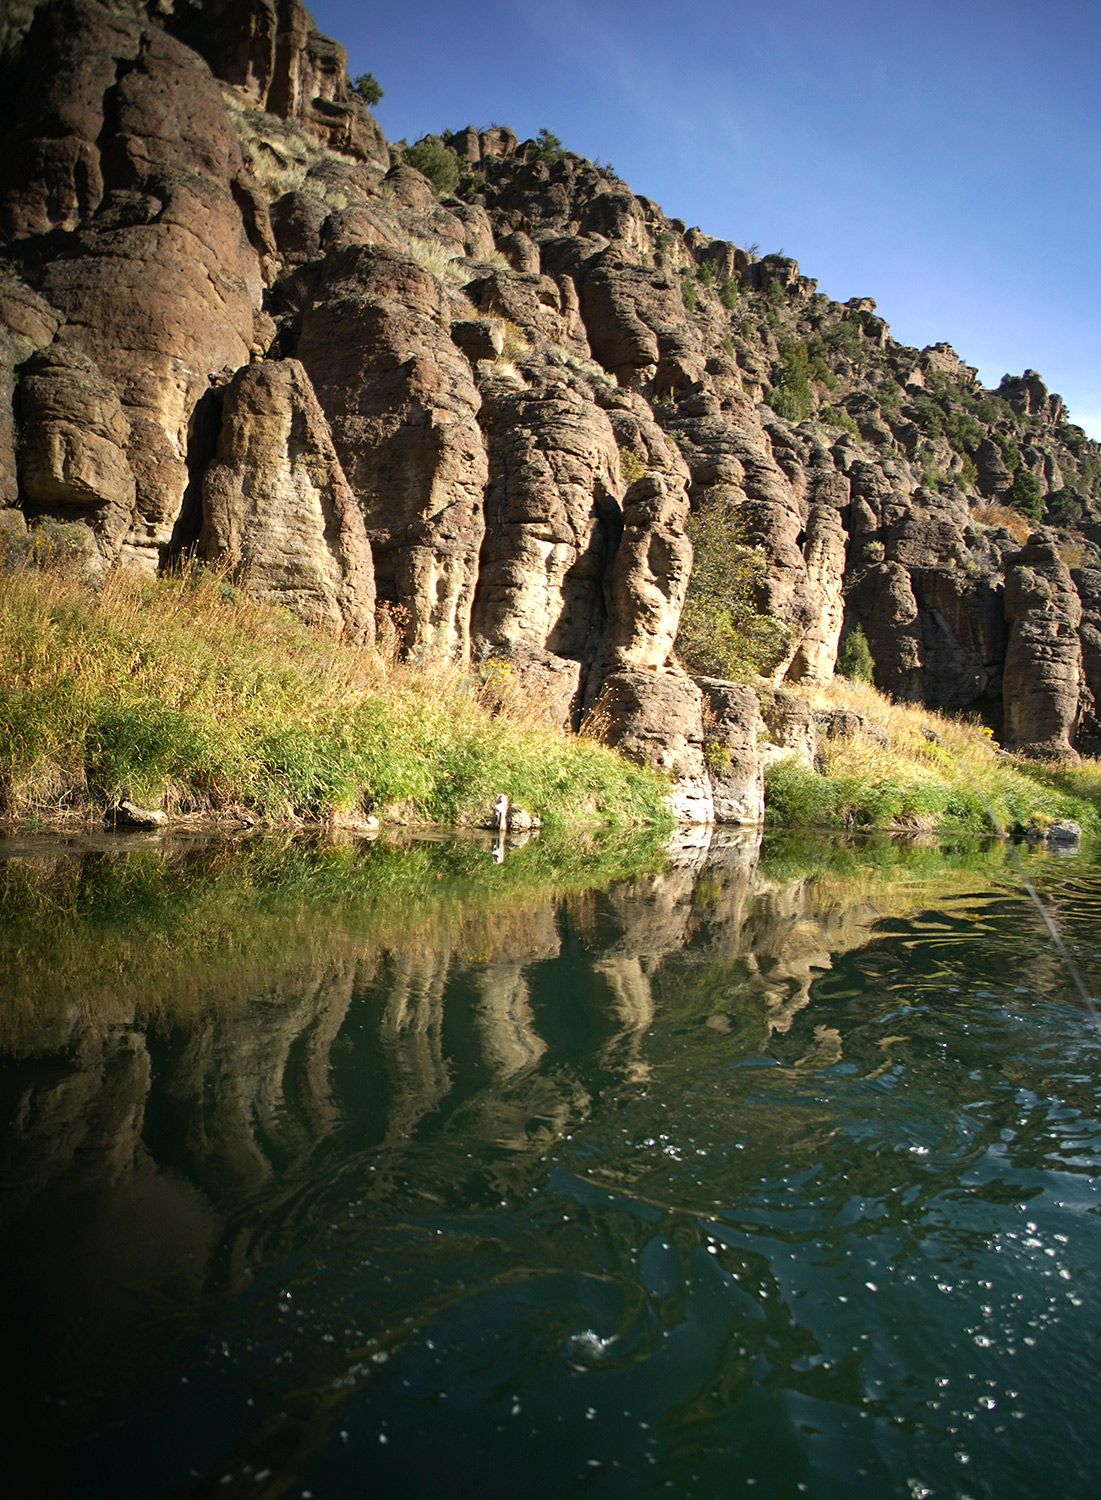 Once under 50 feet of water, now dam free volcanic cliffs surround the Teton river